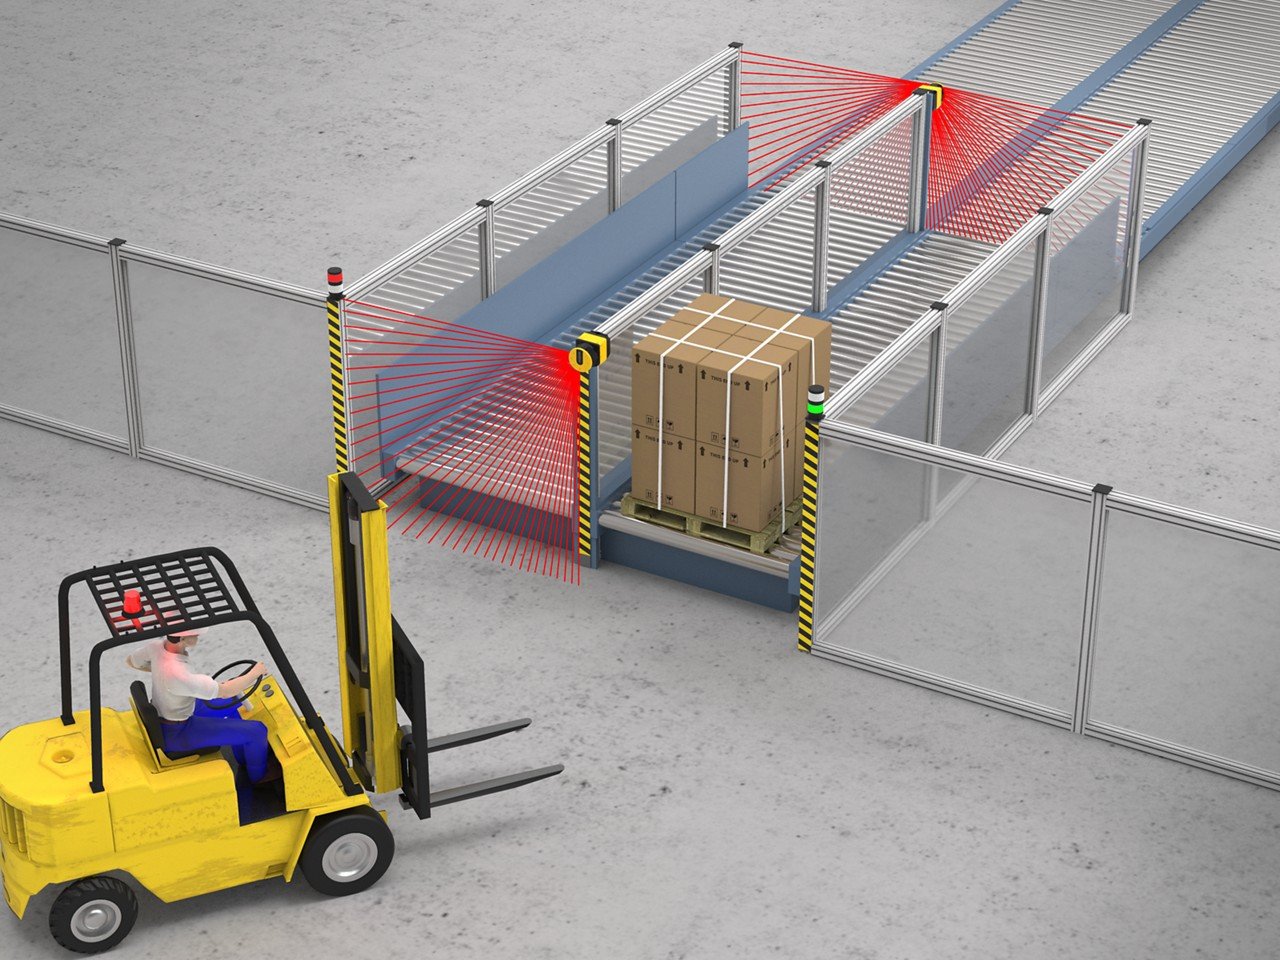 SX5 Safety Laser Scanners Safeguard Multiple Access Points on a Pallet Transfer Conveyor